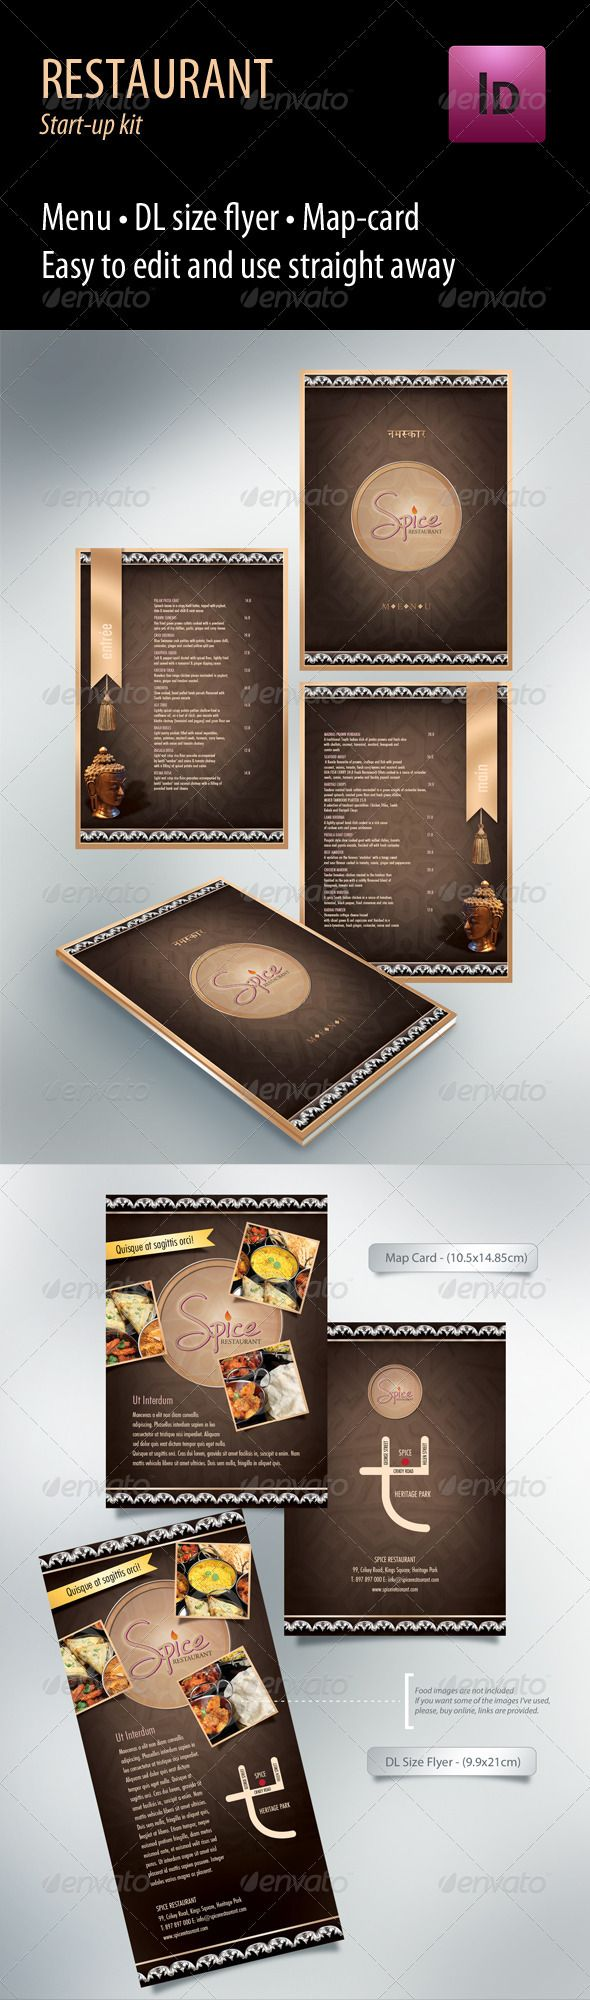 High Quality Restaurant Start-up Kit PSD Template • Only available here ➝ http://graphicriver.net/item/restaurant-startup-kit/666929?ref=pxcr